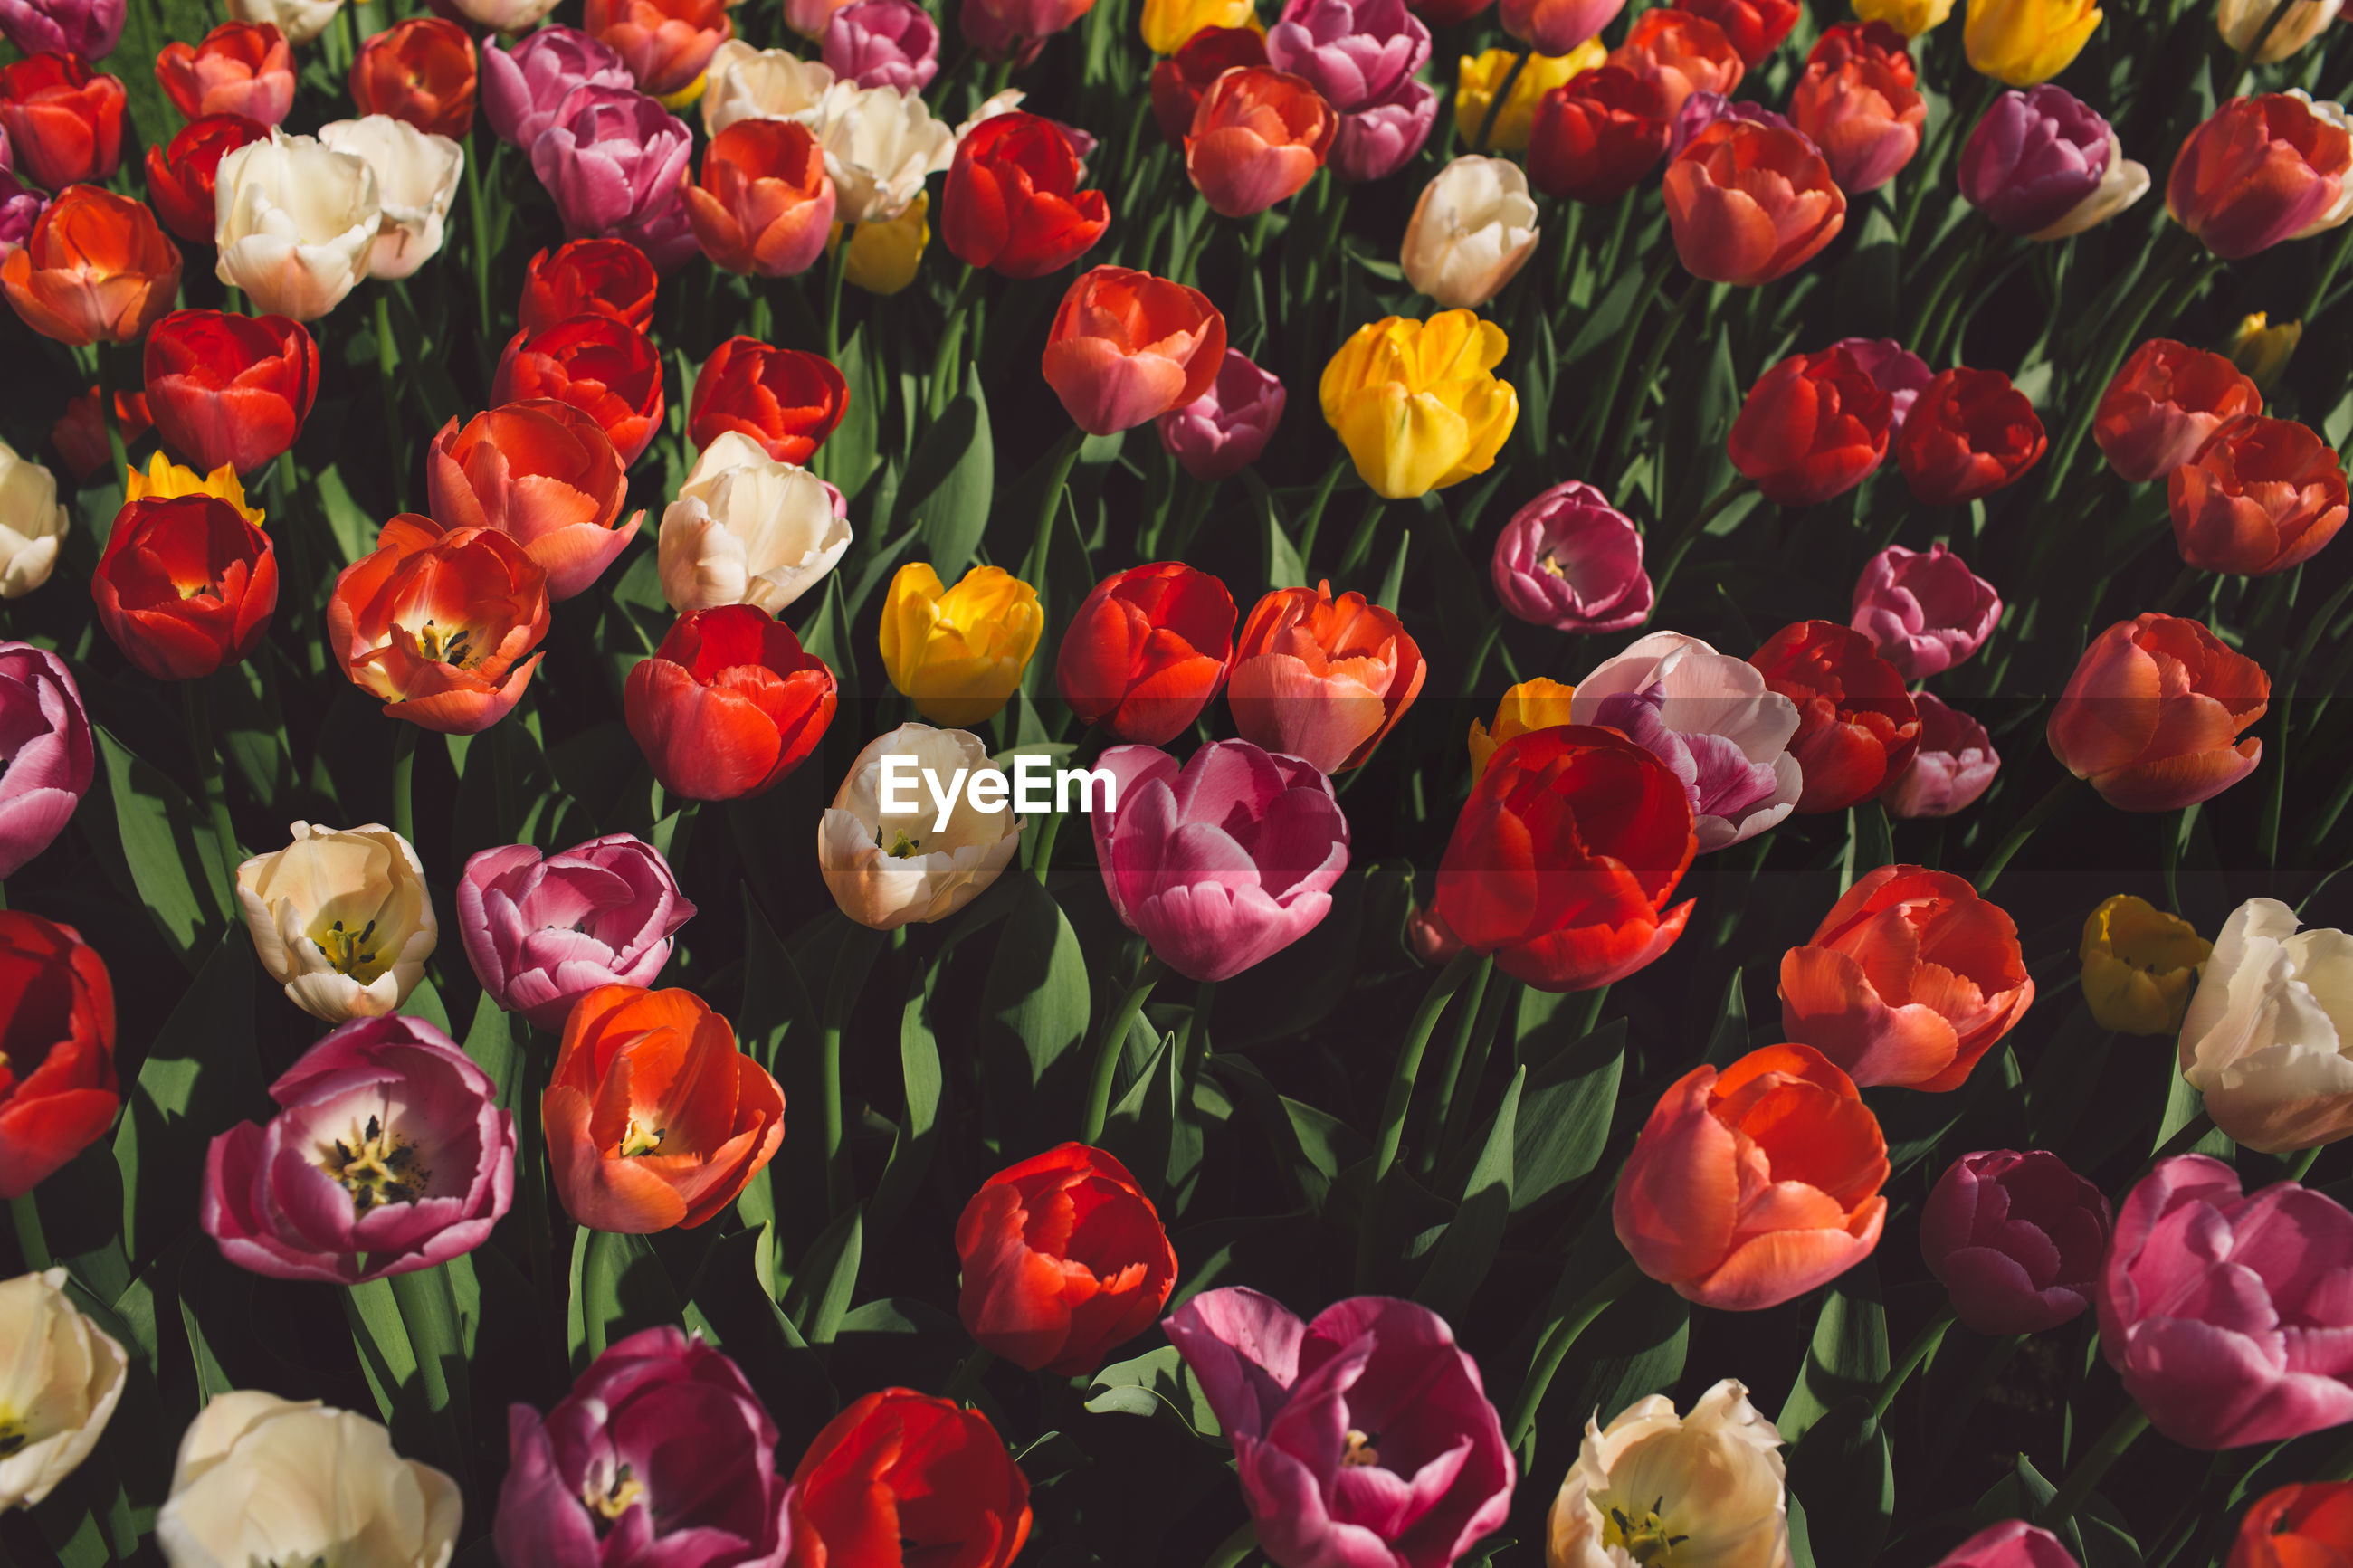 flower, flowering plant, plant, freshness, beauty in nature, petal, full frame, fragility, vulnerability, backgrounds, flower head, inflorescence, no people, close-up, multi colored, tulip, nature, high angle view, choice, abundance, outdoors, bouquet, flower arrangement, bunch of flowers